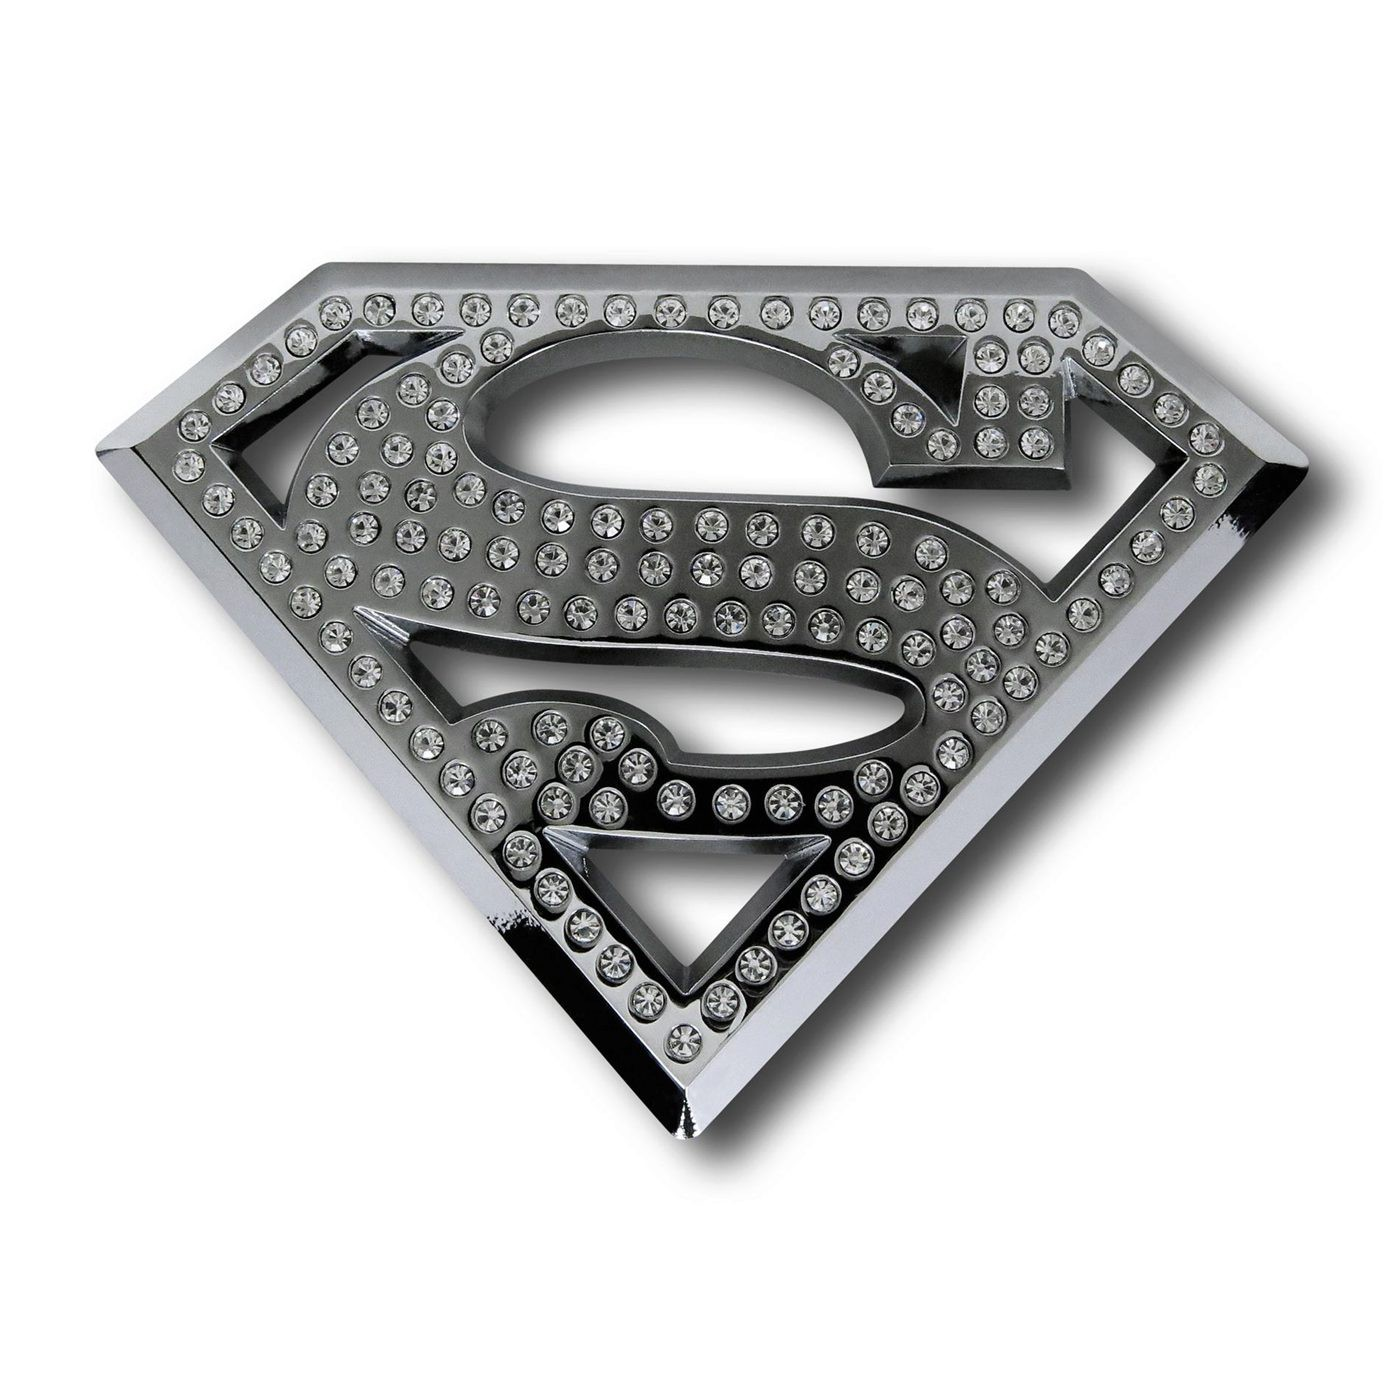 Superman Bling Symbol 3D Plastic Car Emblem